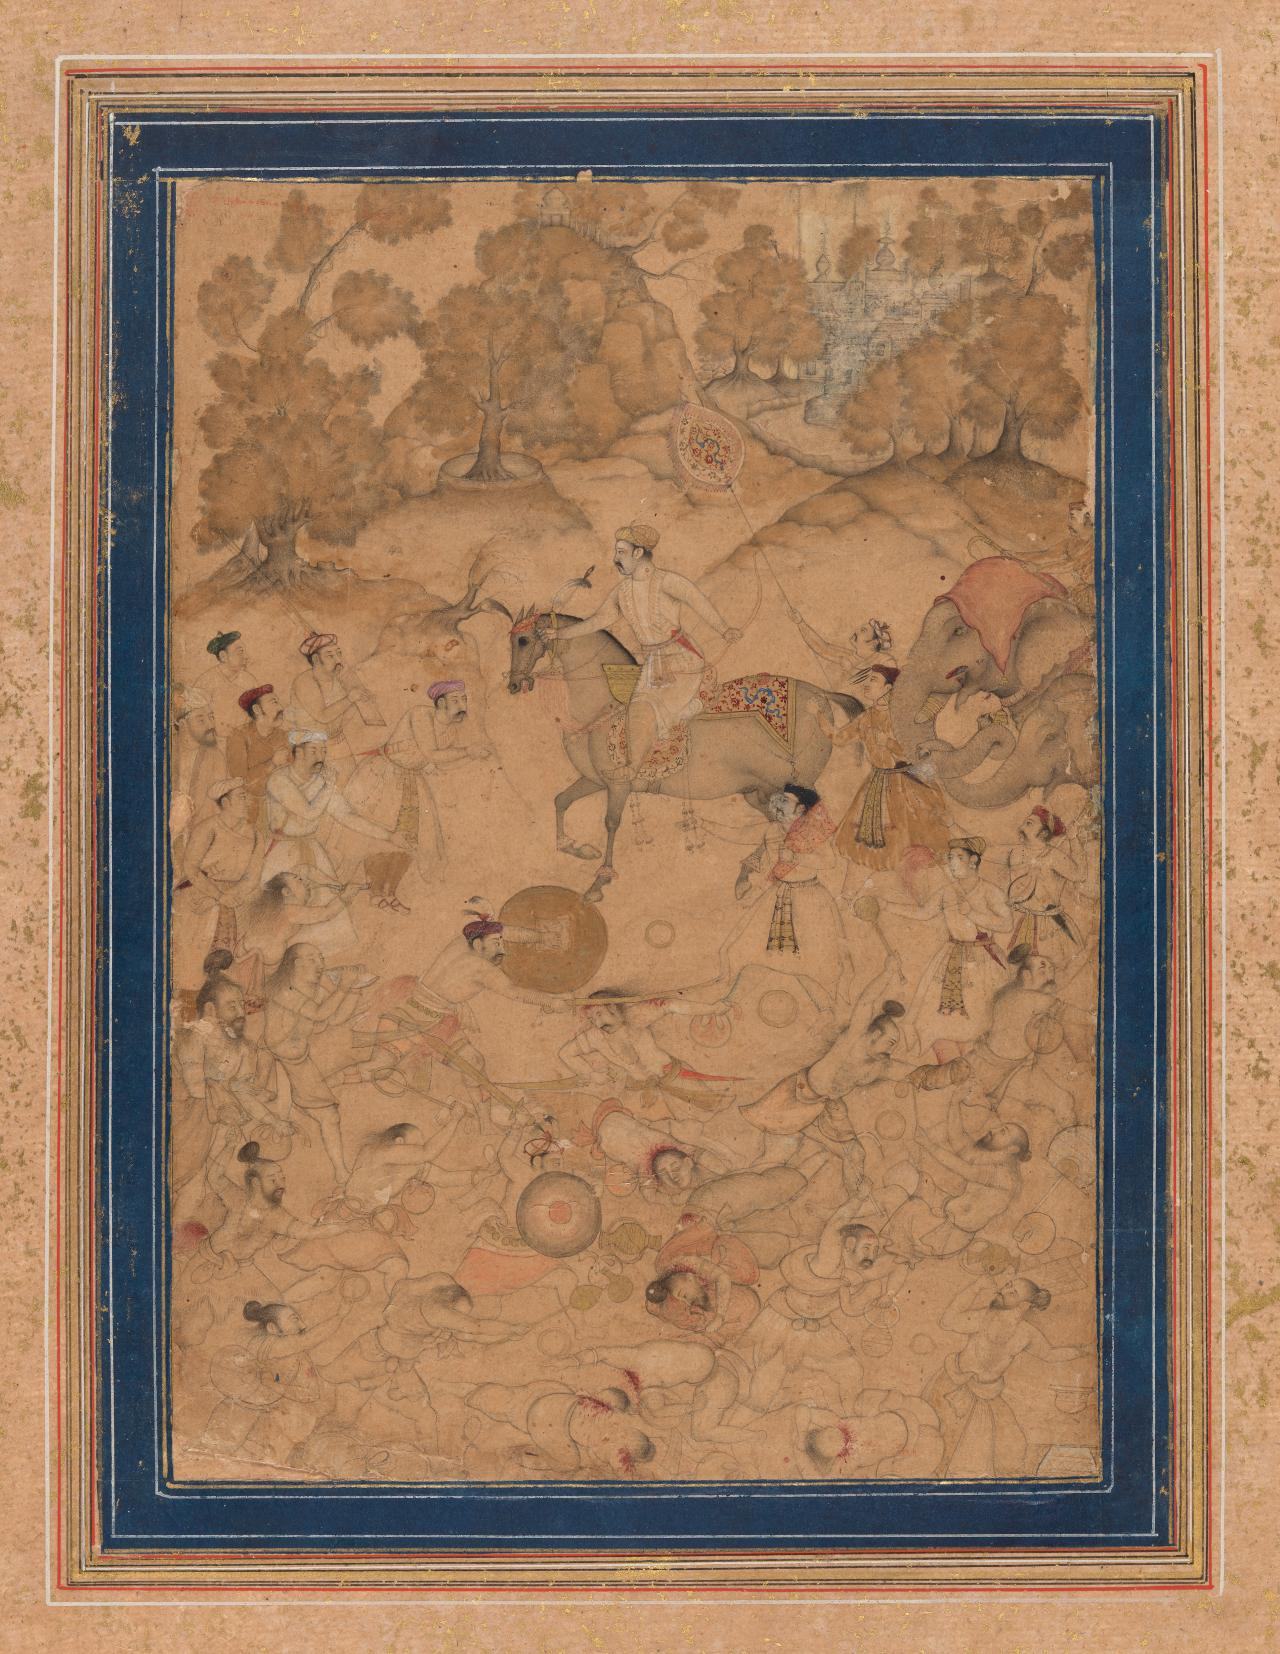 The Mughal emperor observes battle between the Kur and Puri bands of ascetics